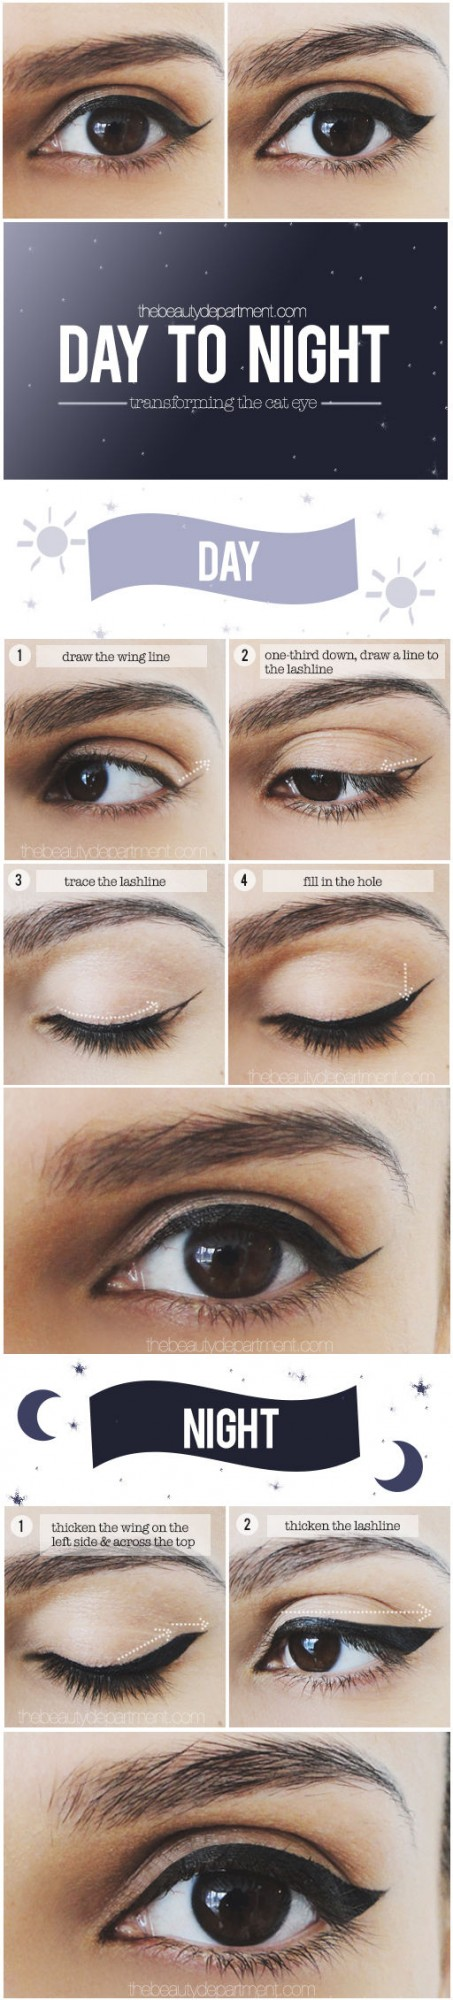 20 Great Makeup Ideas and Tutorials for Stunning Spring Look  (13)